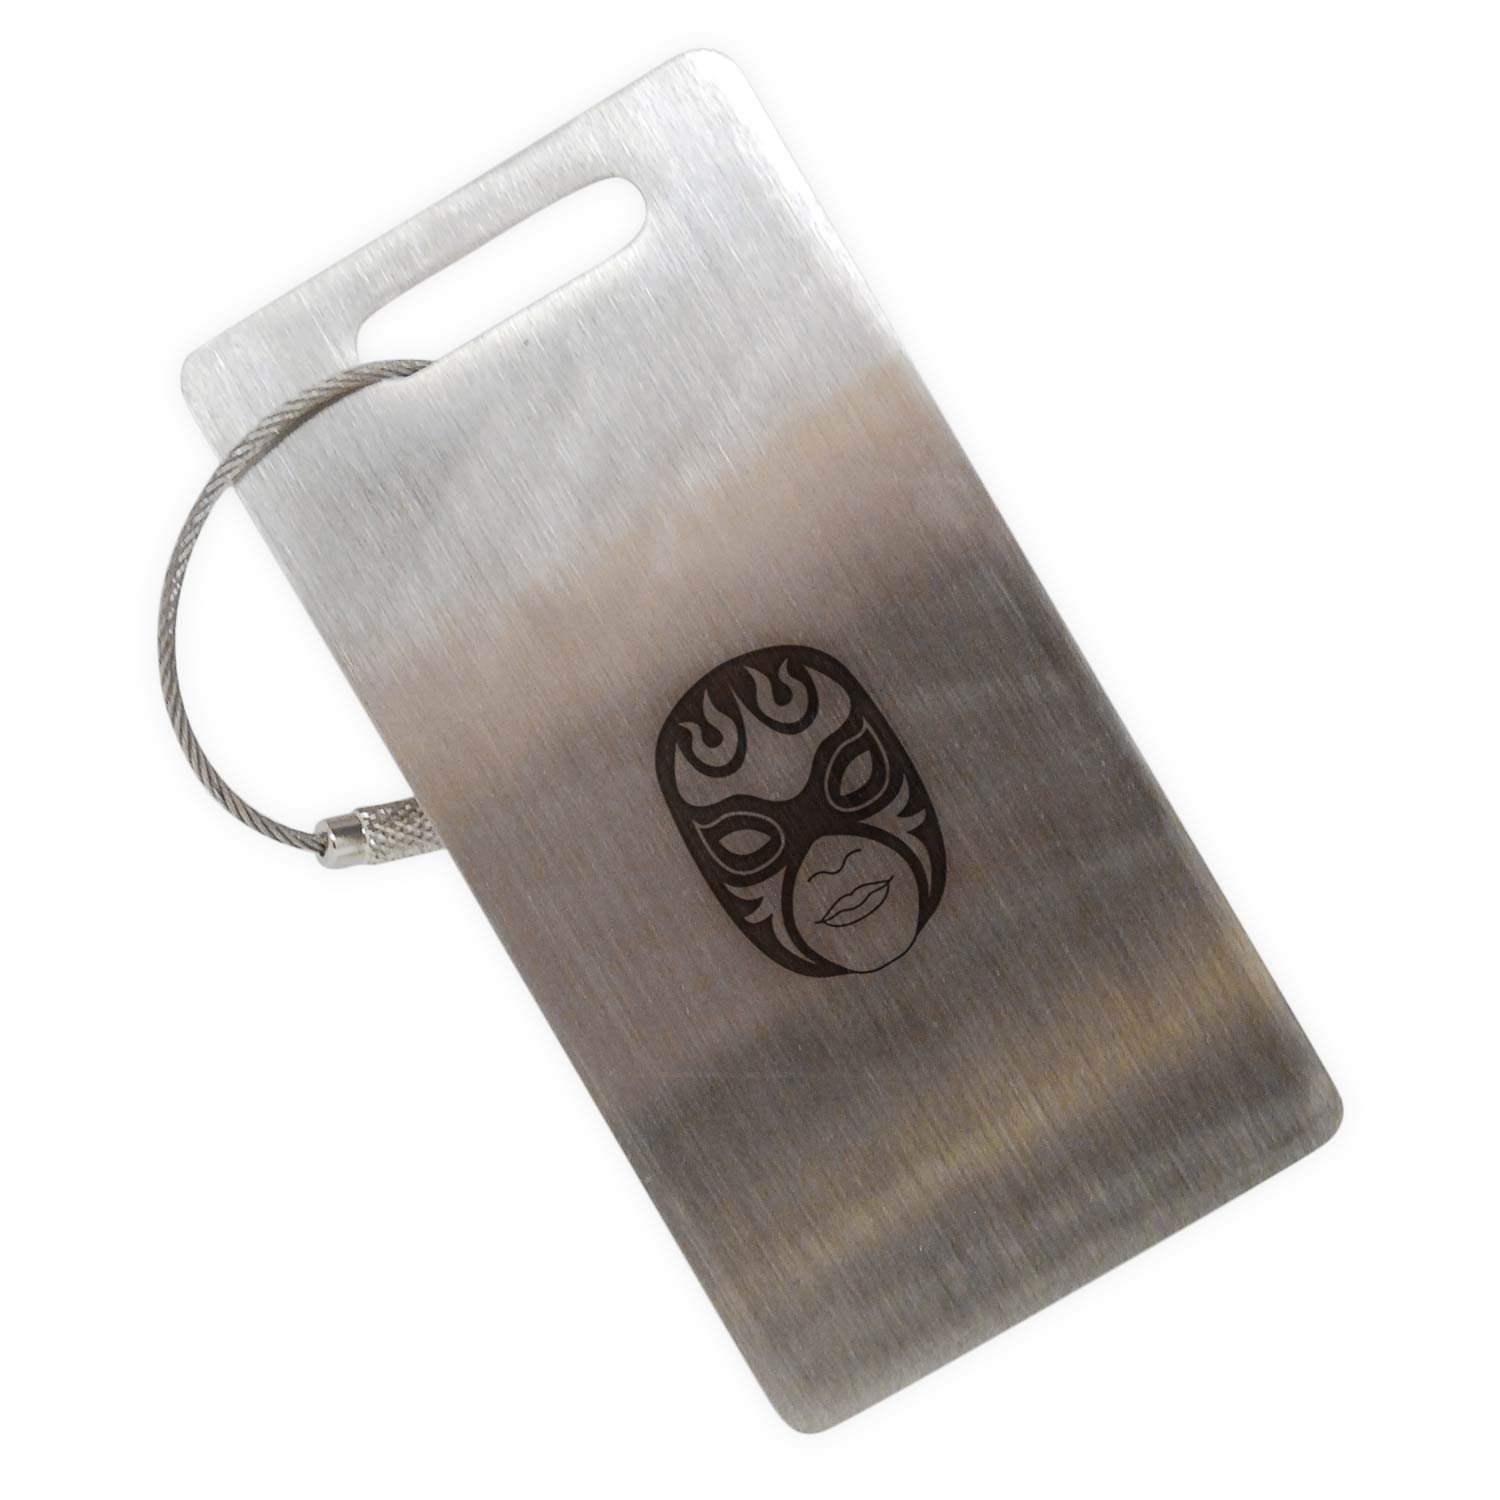 Wrestling Mask Stainless Steel Luggage Tag, Luggage Tag